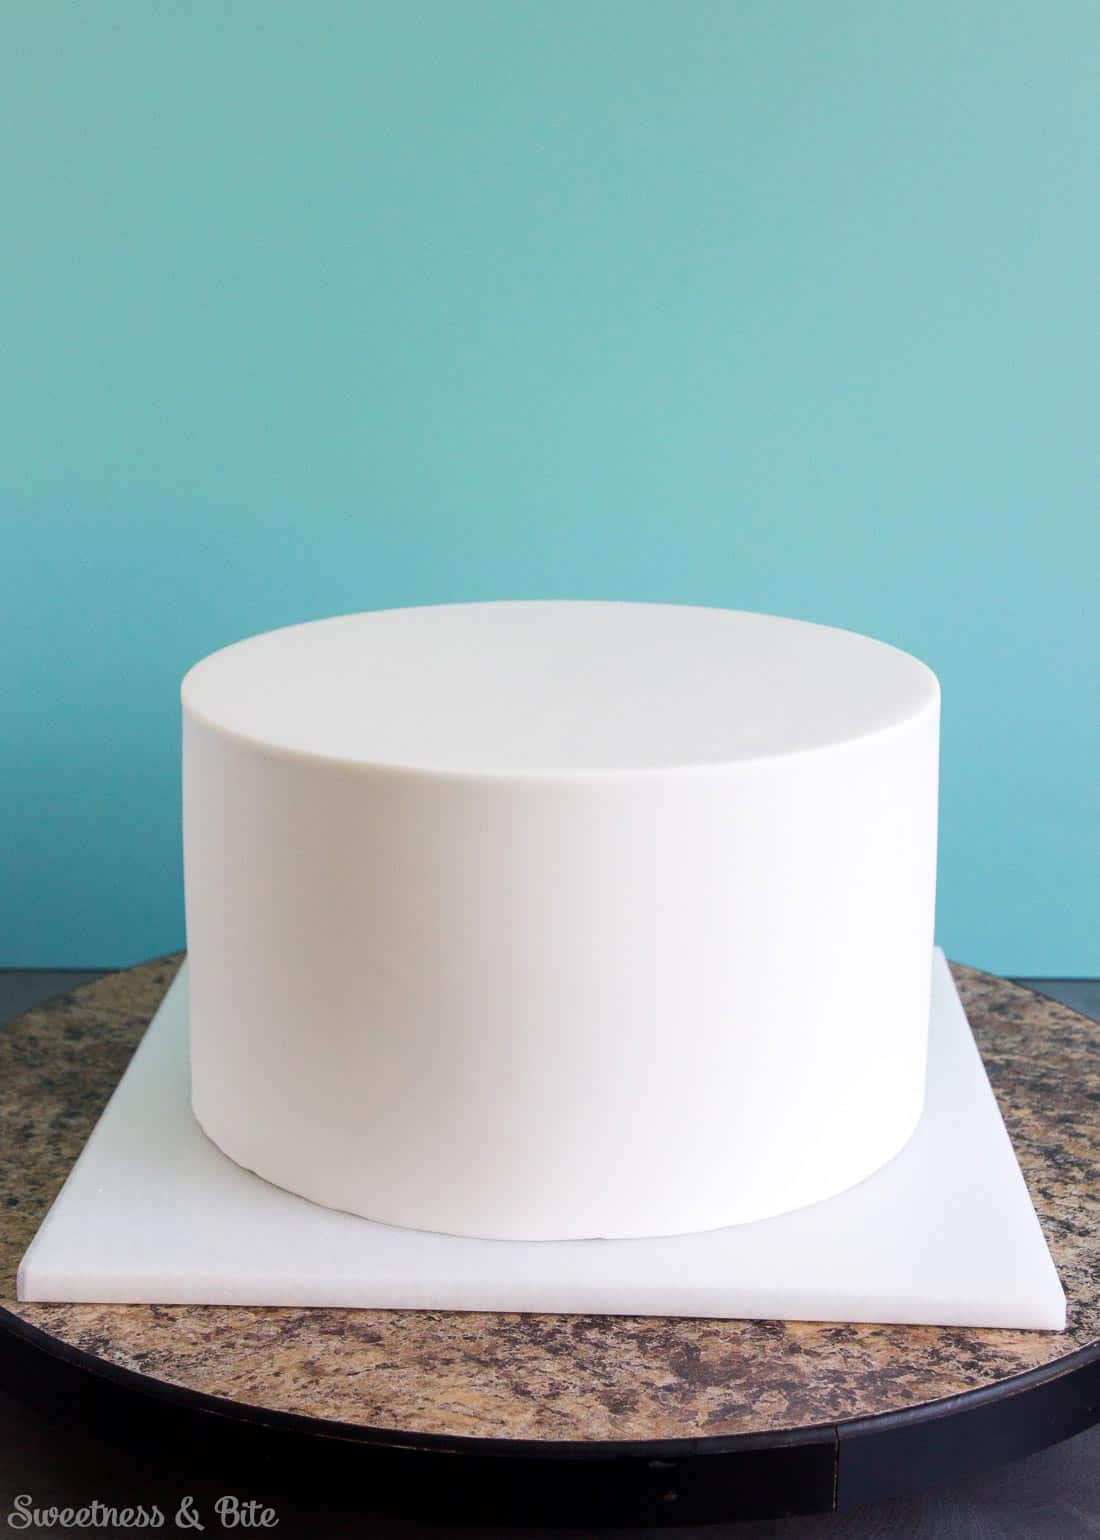 Applying Fondant Icing To A Cake